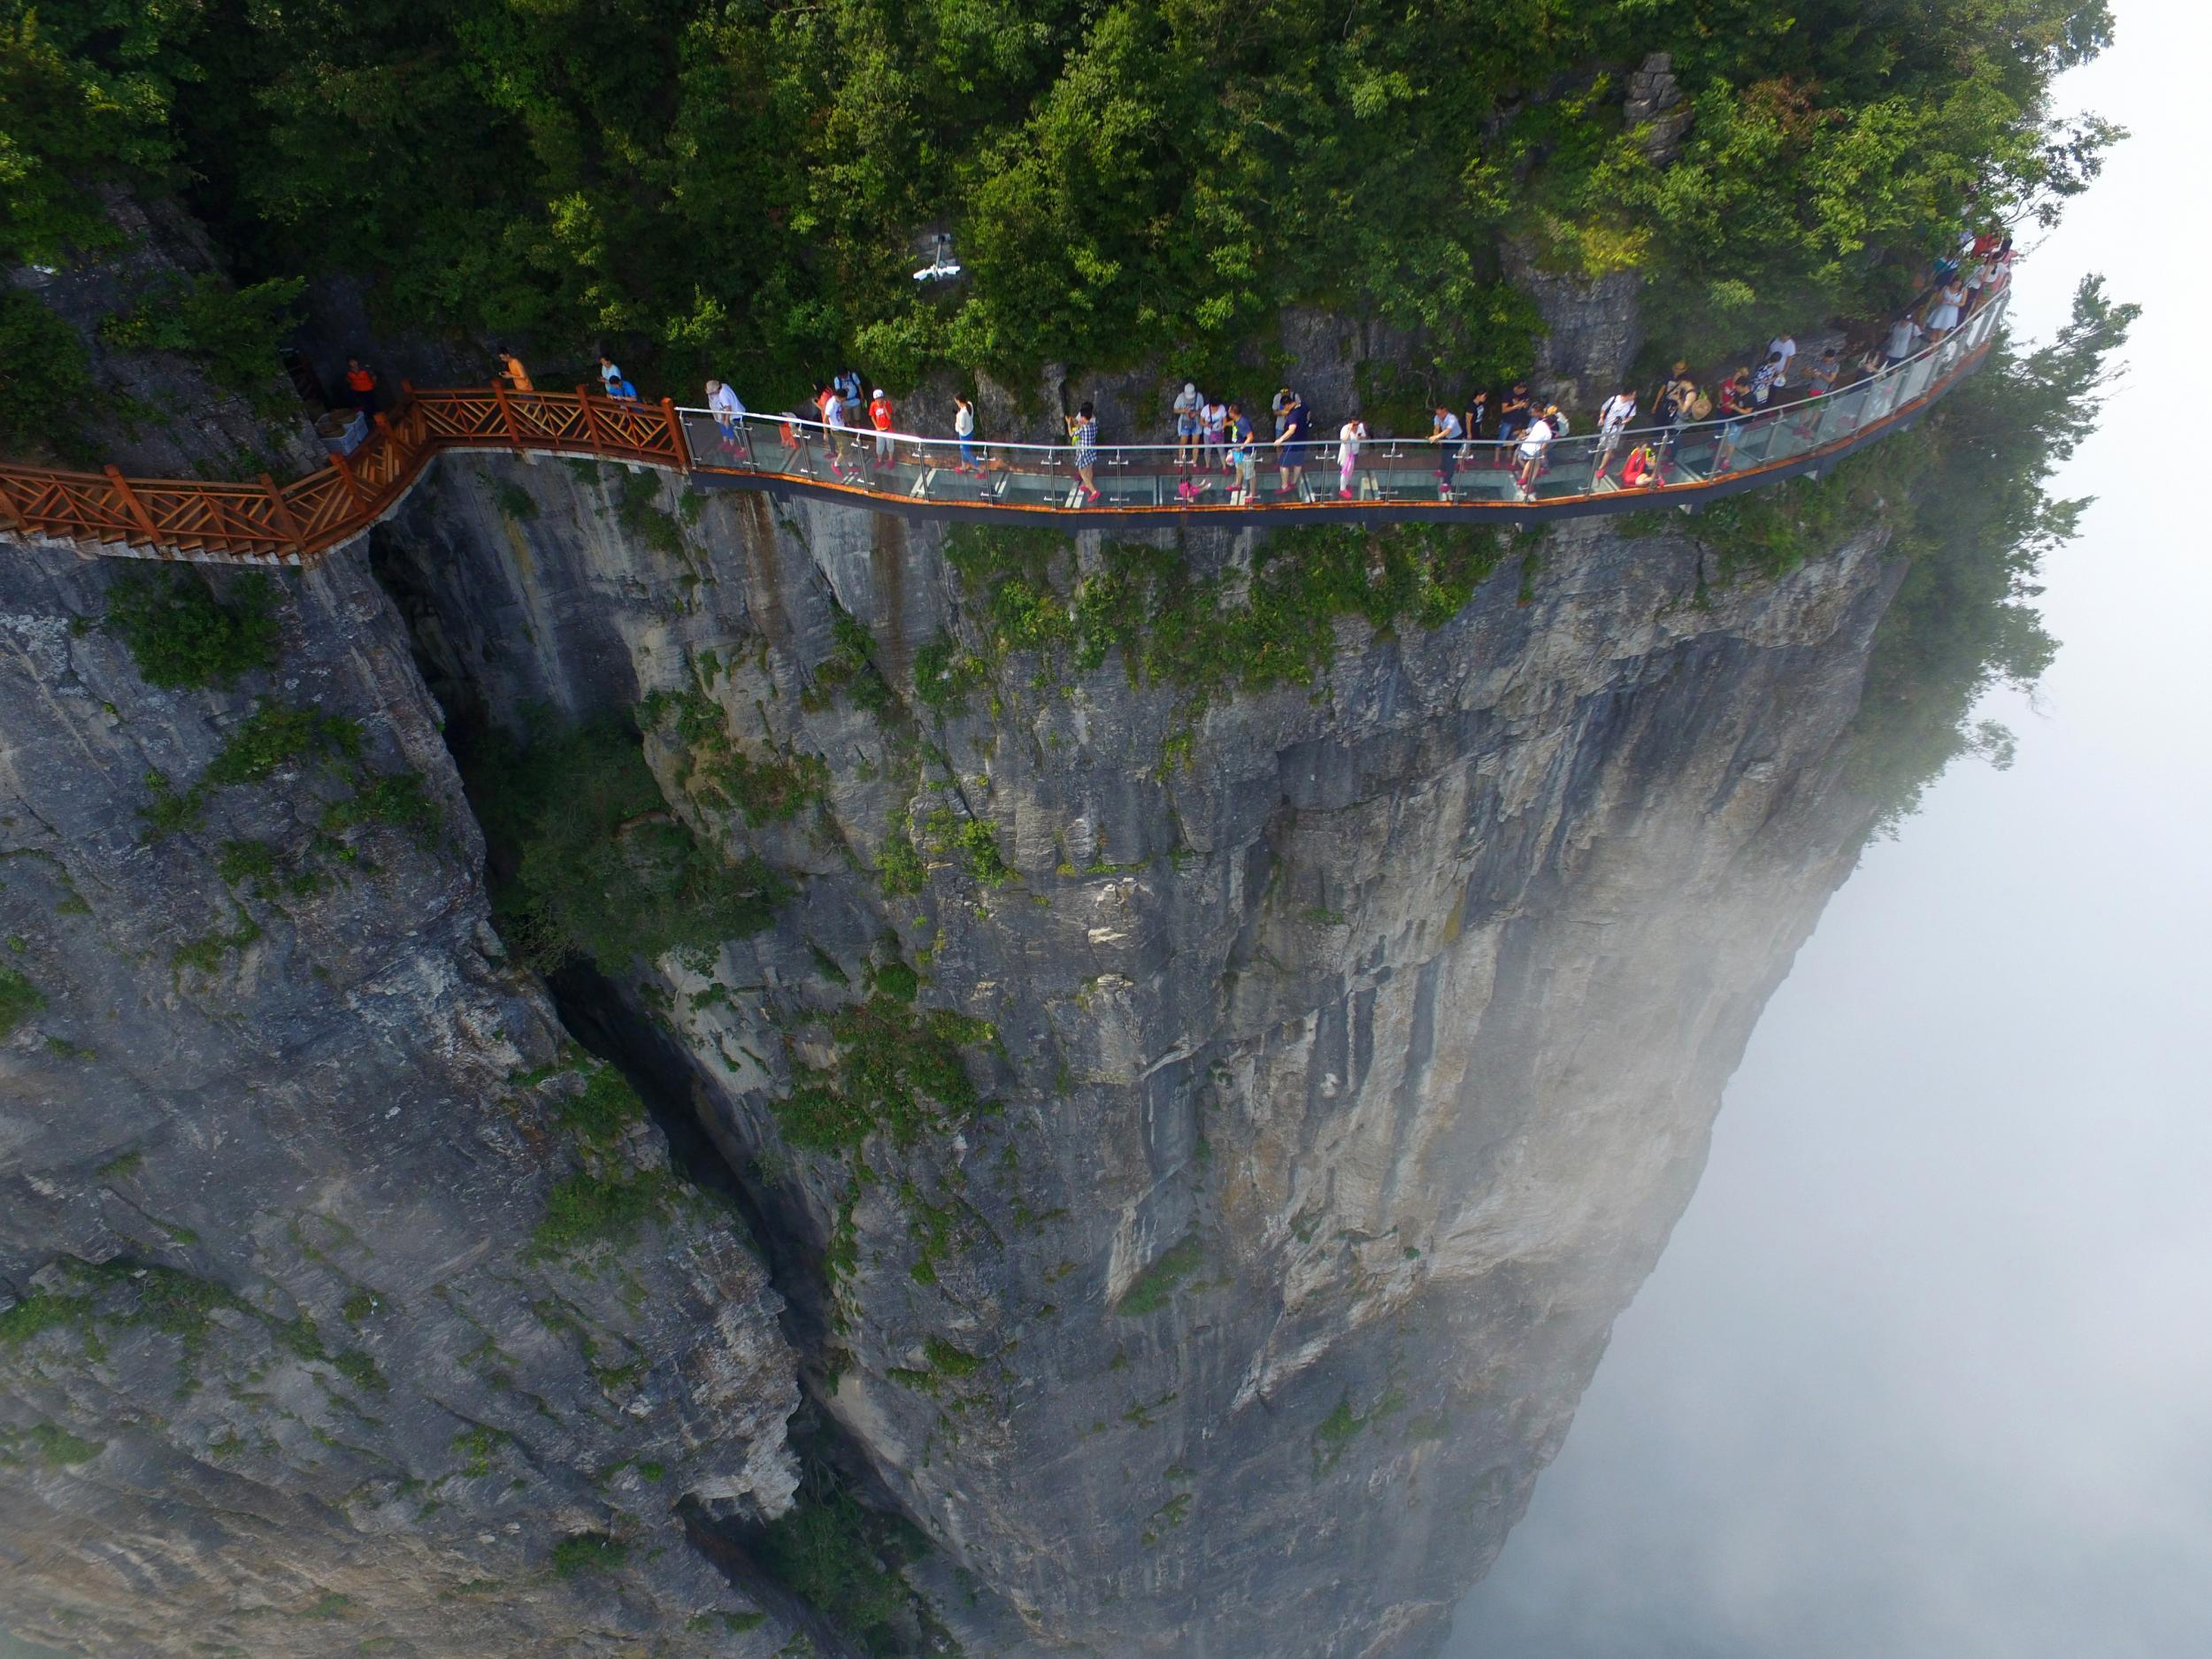 China's most terrifying tourist attractions, from the world's tallest glass bridge to a 1,000ft high cliff swing